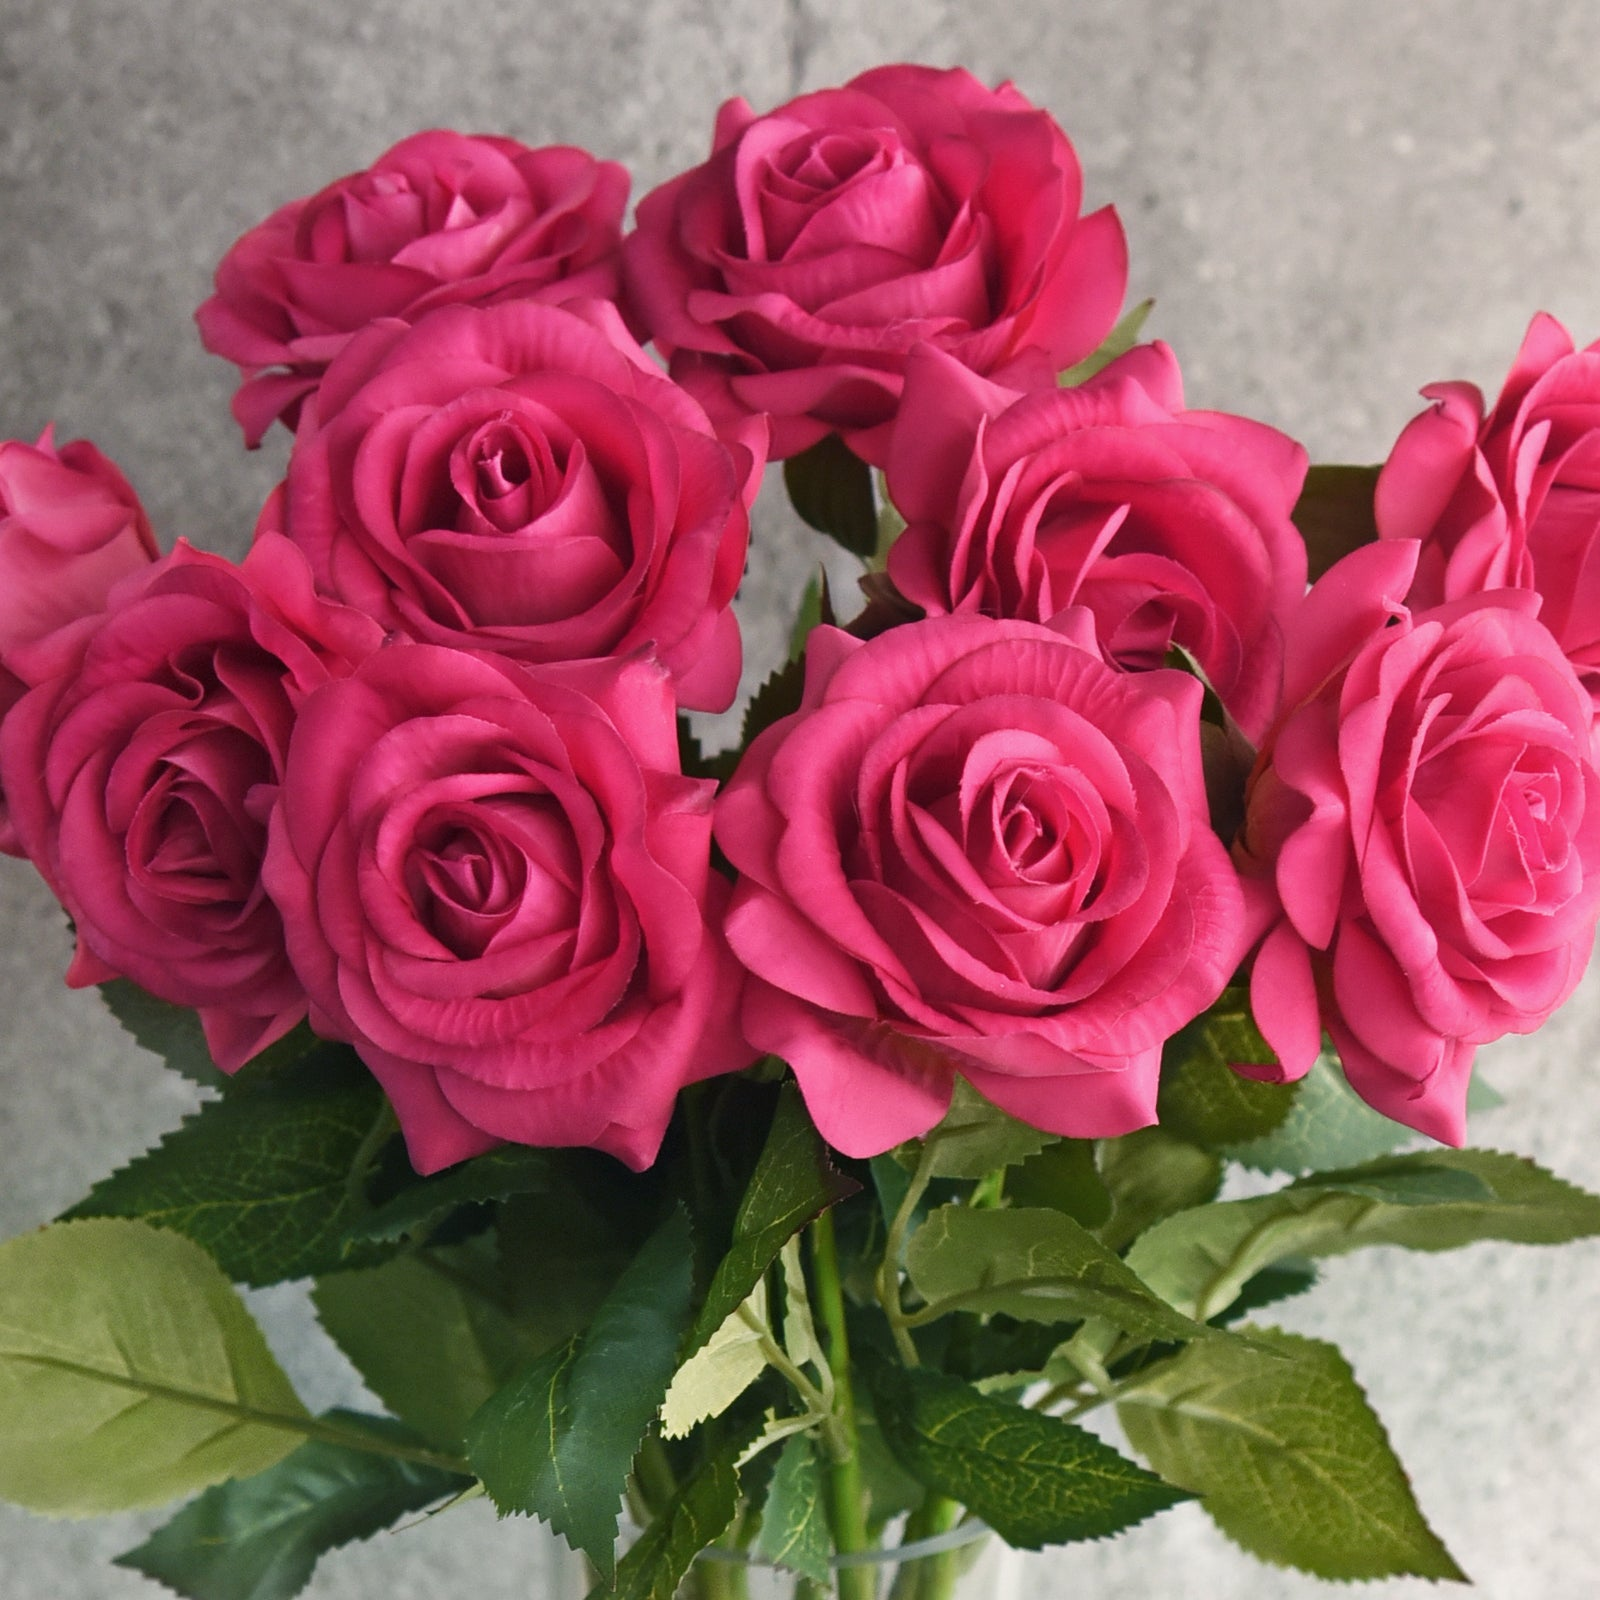 Hot Lady Real Touch Silk Artificial Flowers 'Petals Feel and Look like Fresh Roses 10 Stems